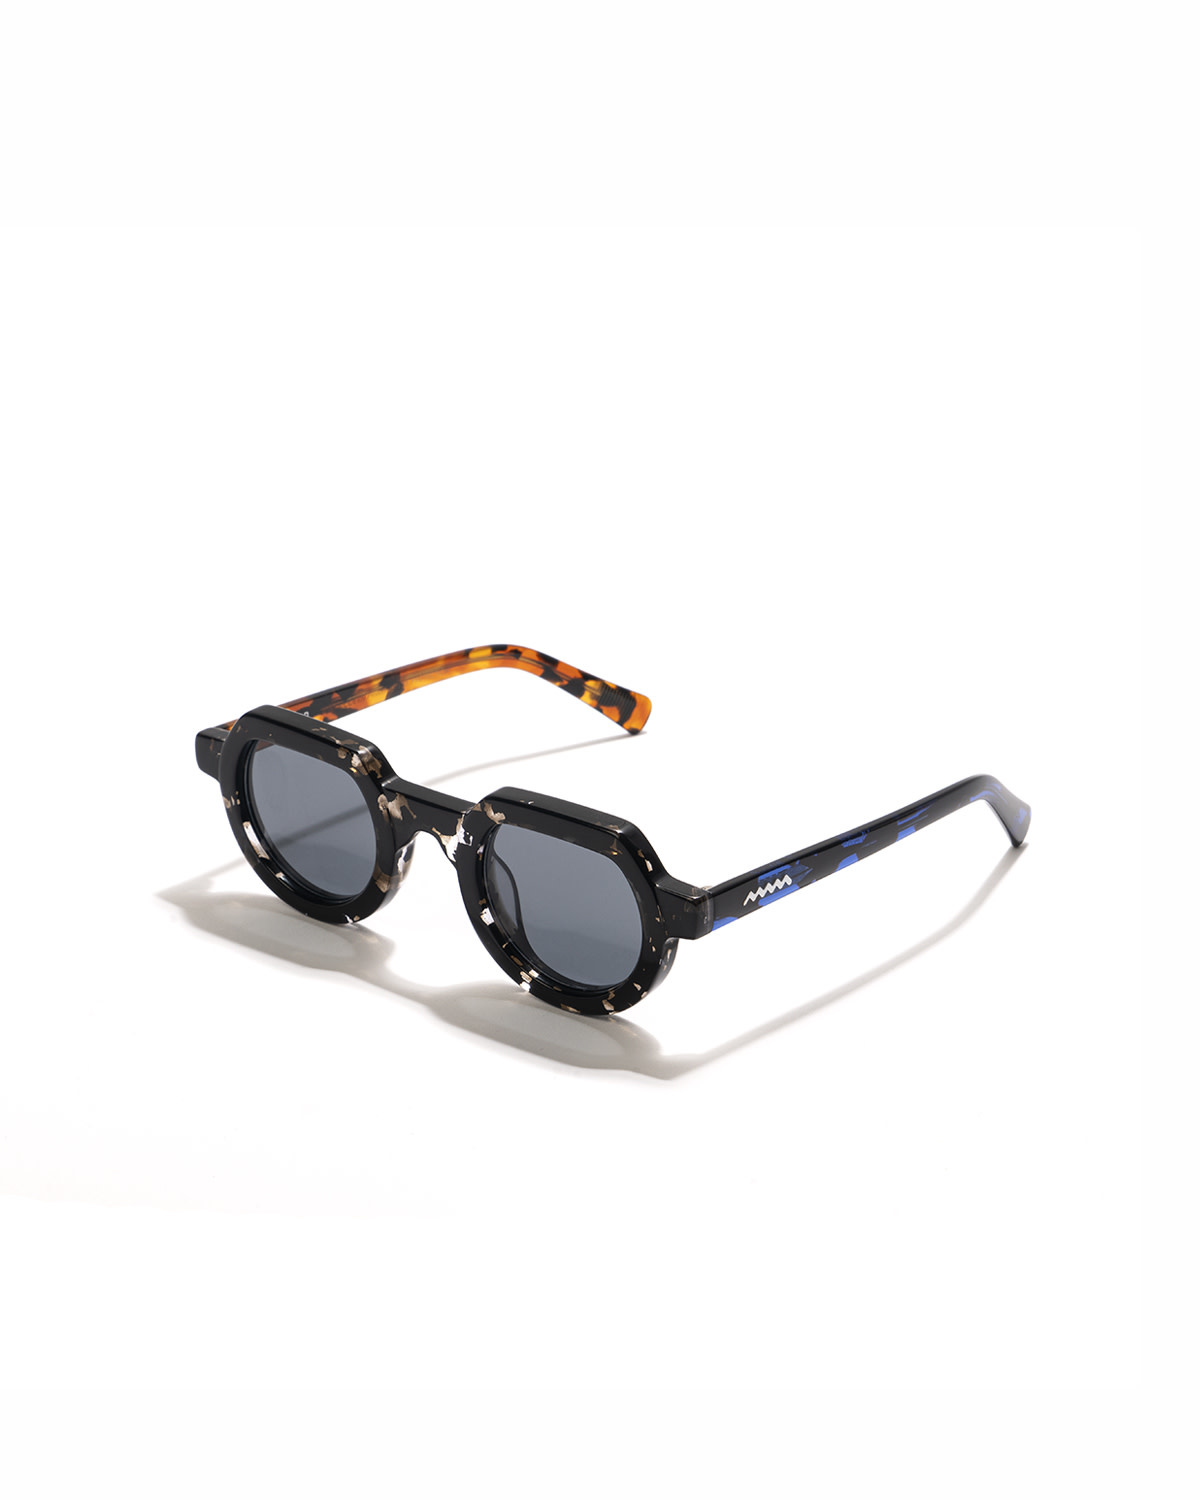 Brain Dead Tani Sunglasses in Multi-Tortoise